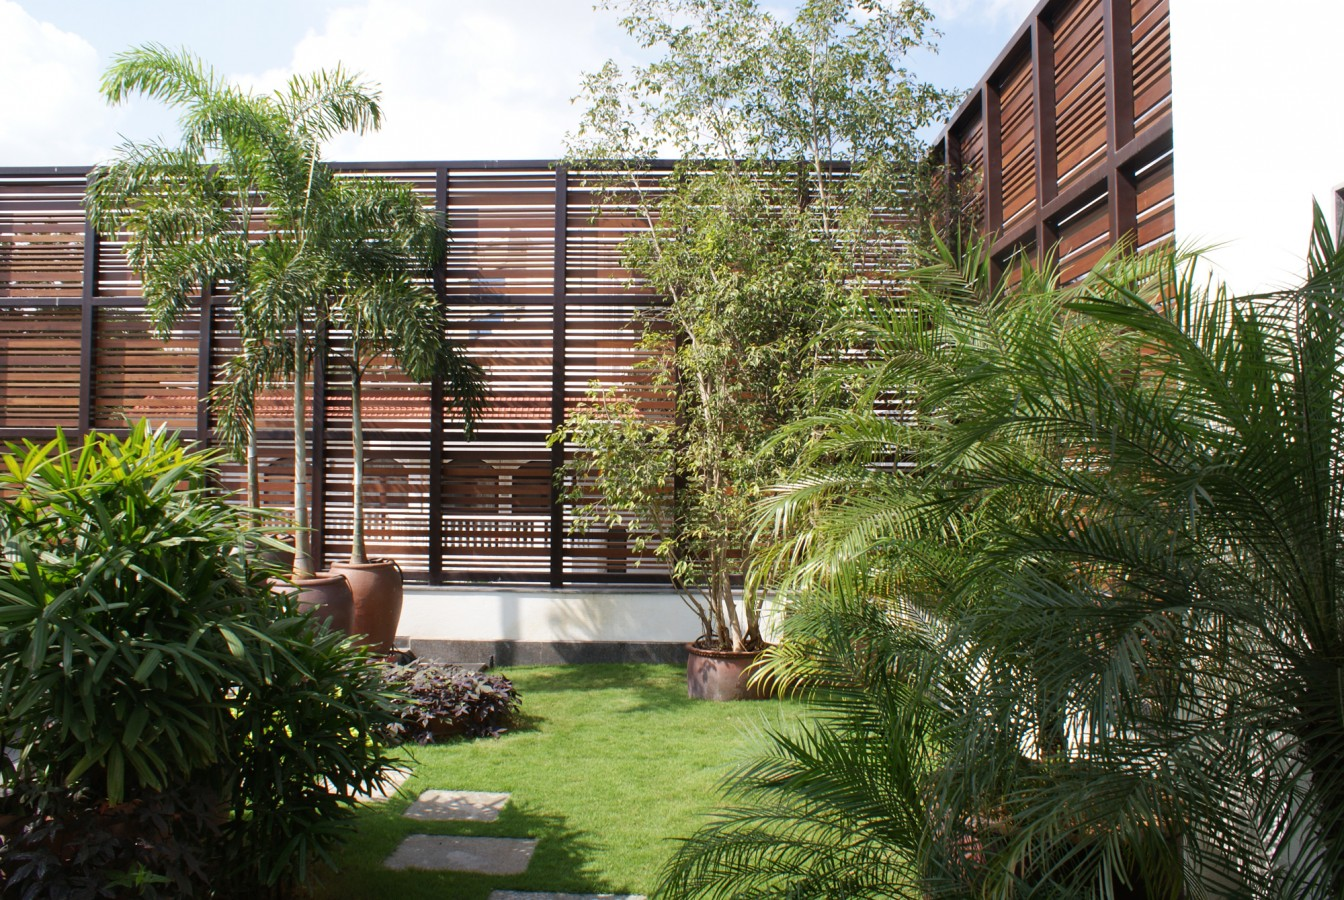 Terrace garden house rma architects for Terrace garden